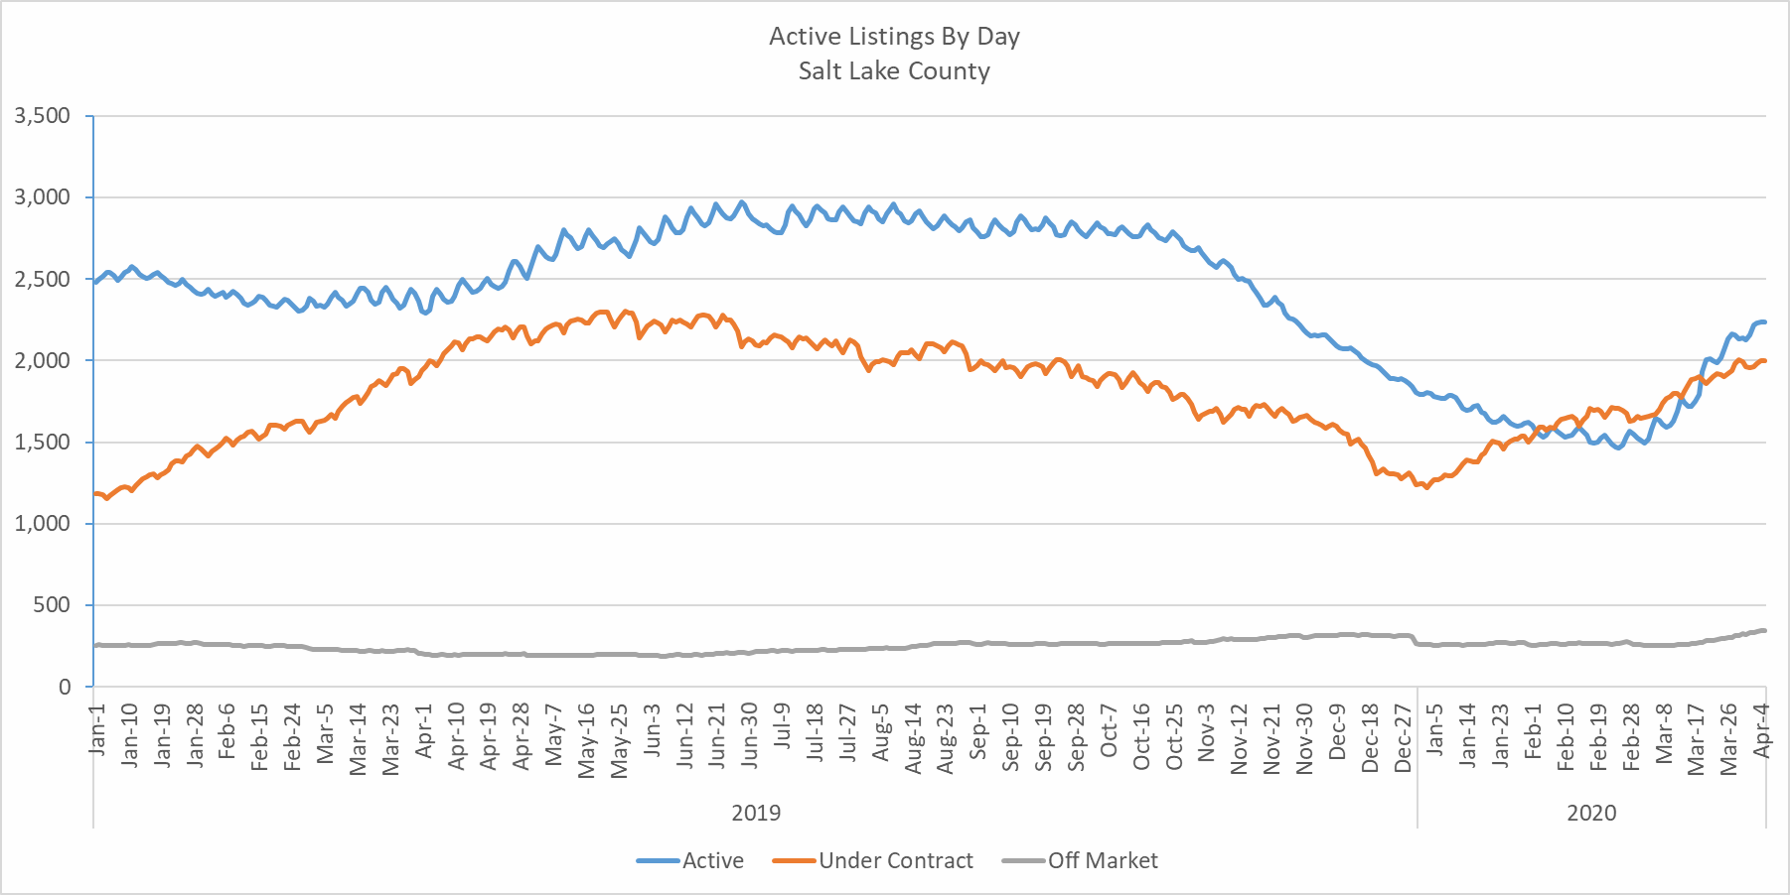 History of Active Listings in Salt Lake County